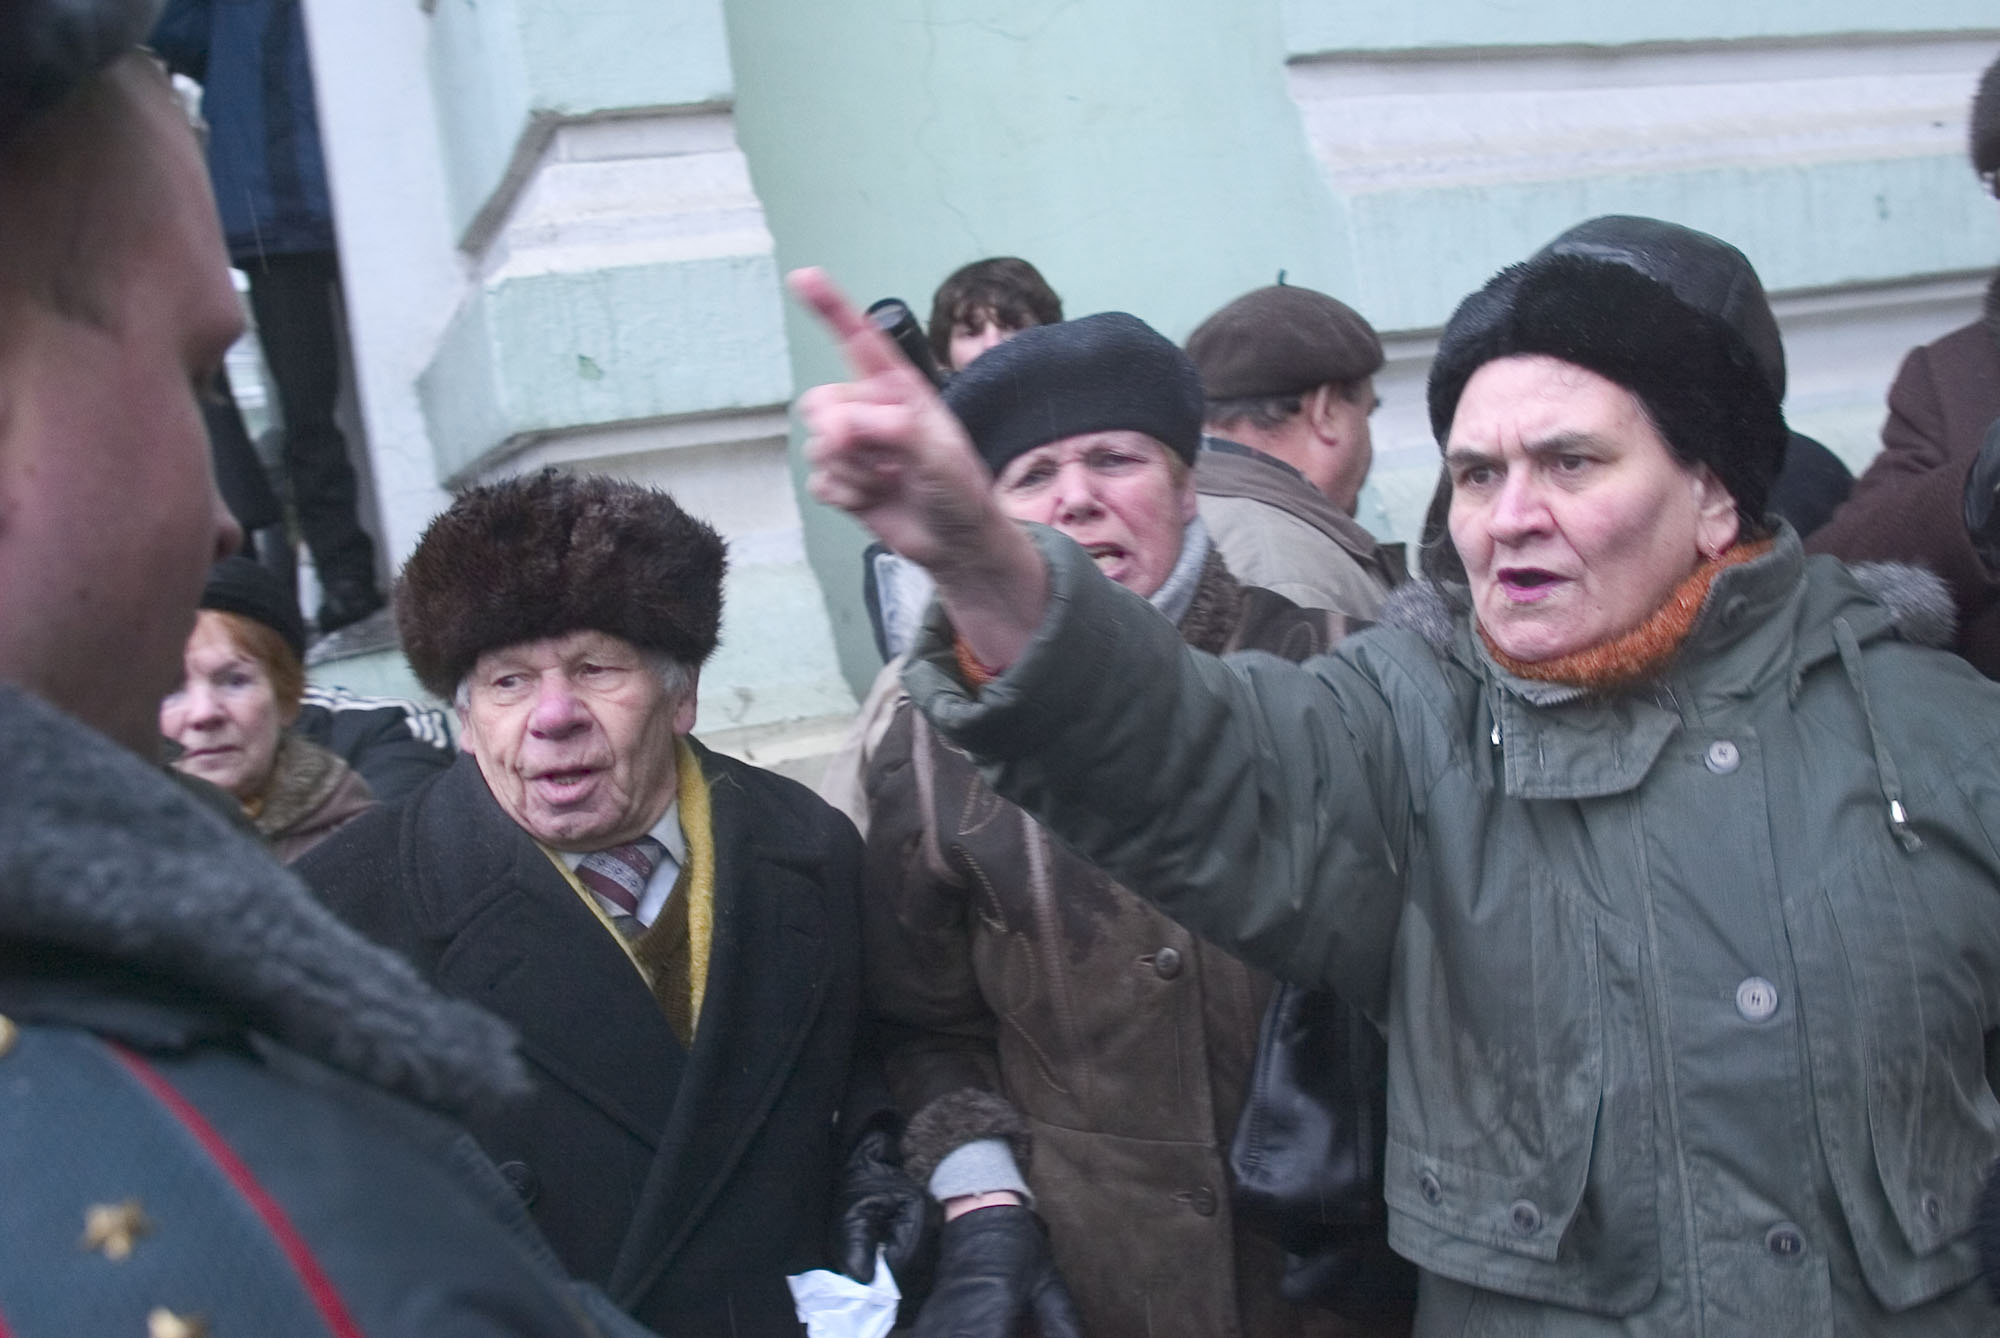 Protesters argue with police at a demonstration in Moscow  Russia, Saturday, January 22, 2005. Russian pensioners have blocked roads and main streets in the country's biggest cities to protest the abolition of free public transportation and prescription drugs in exchange for cash compensation. Photographer: Dmitry Beliakov/Bloomberg News.